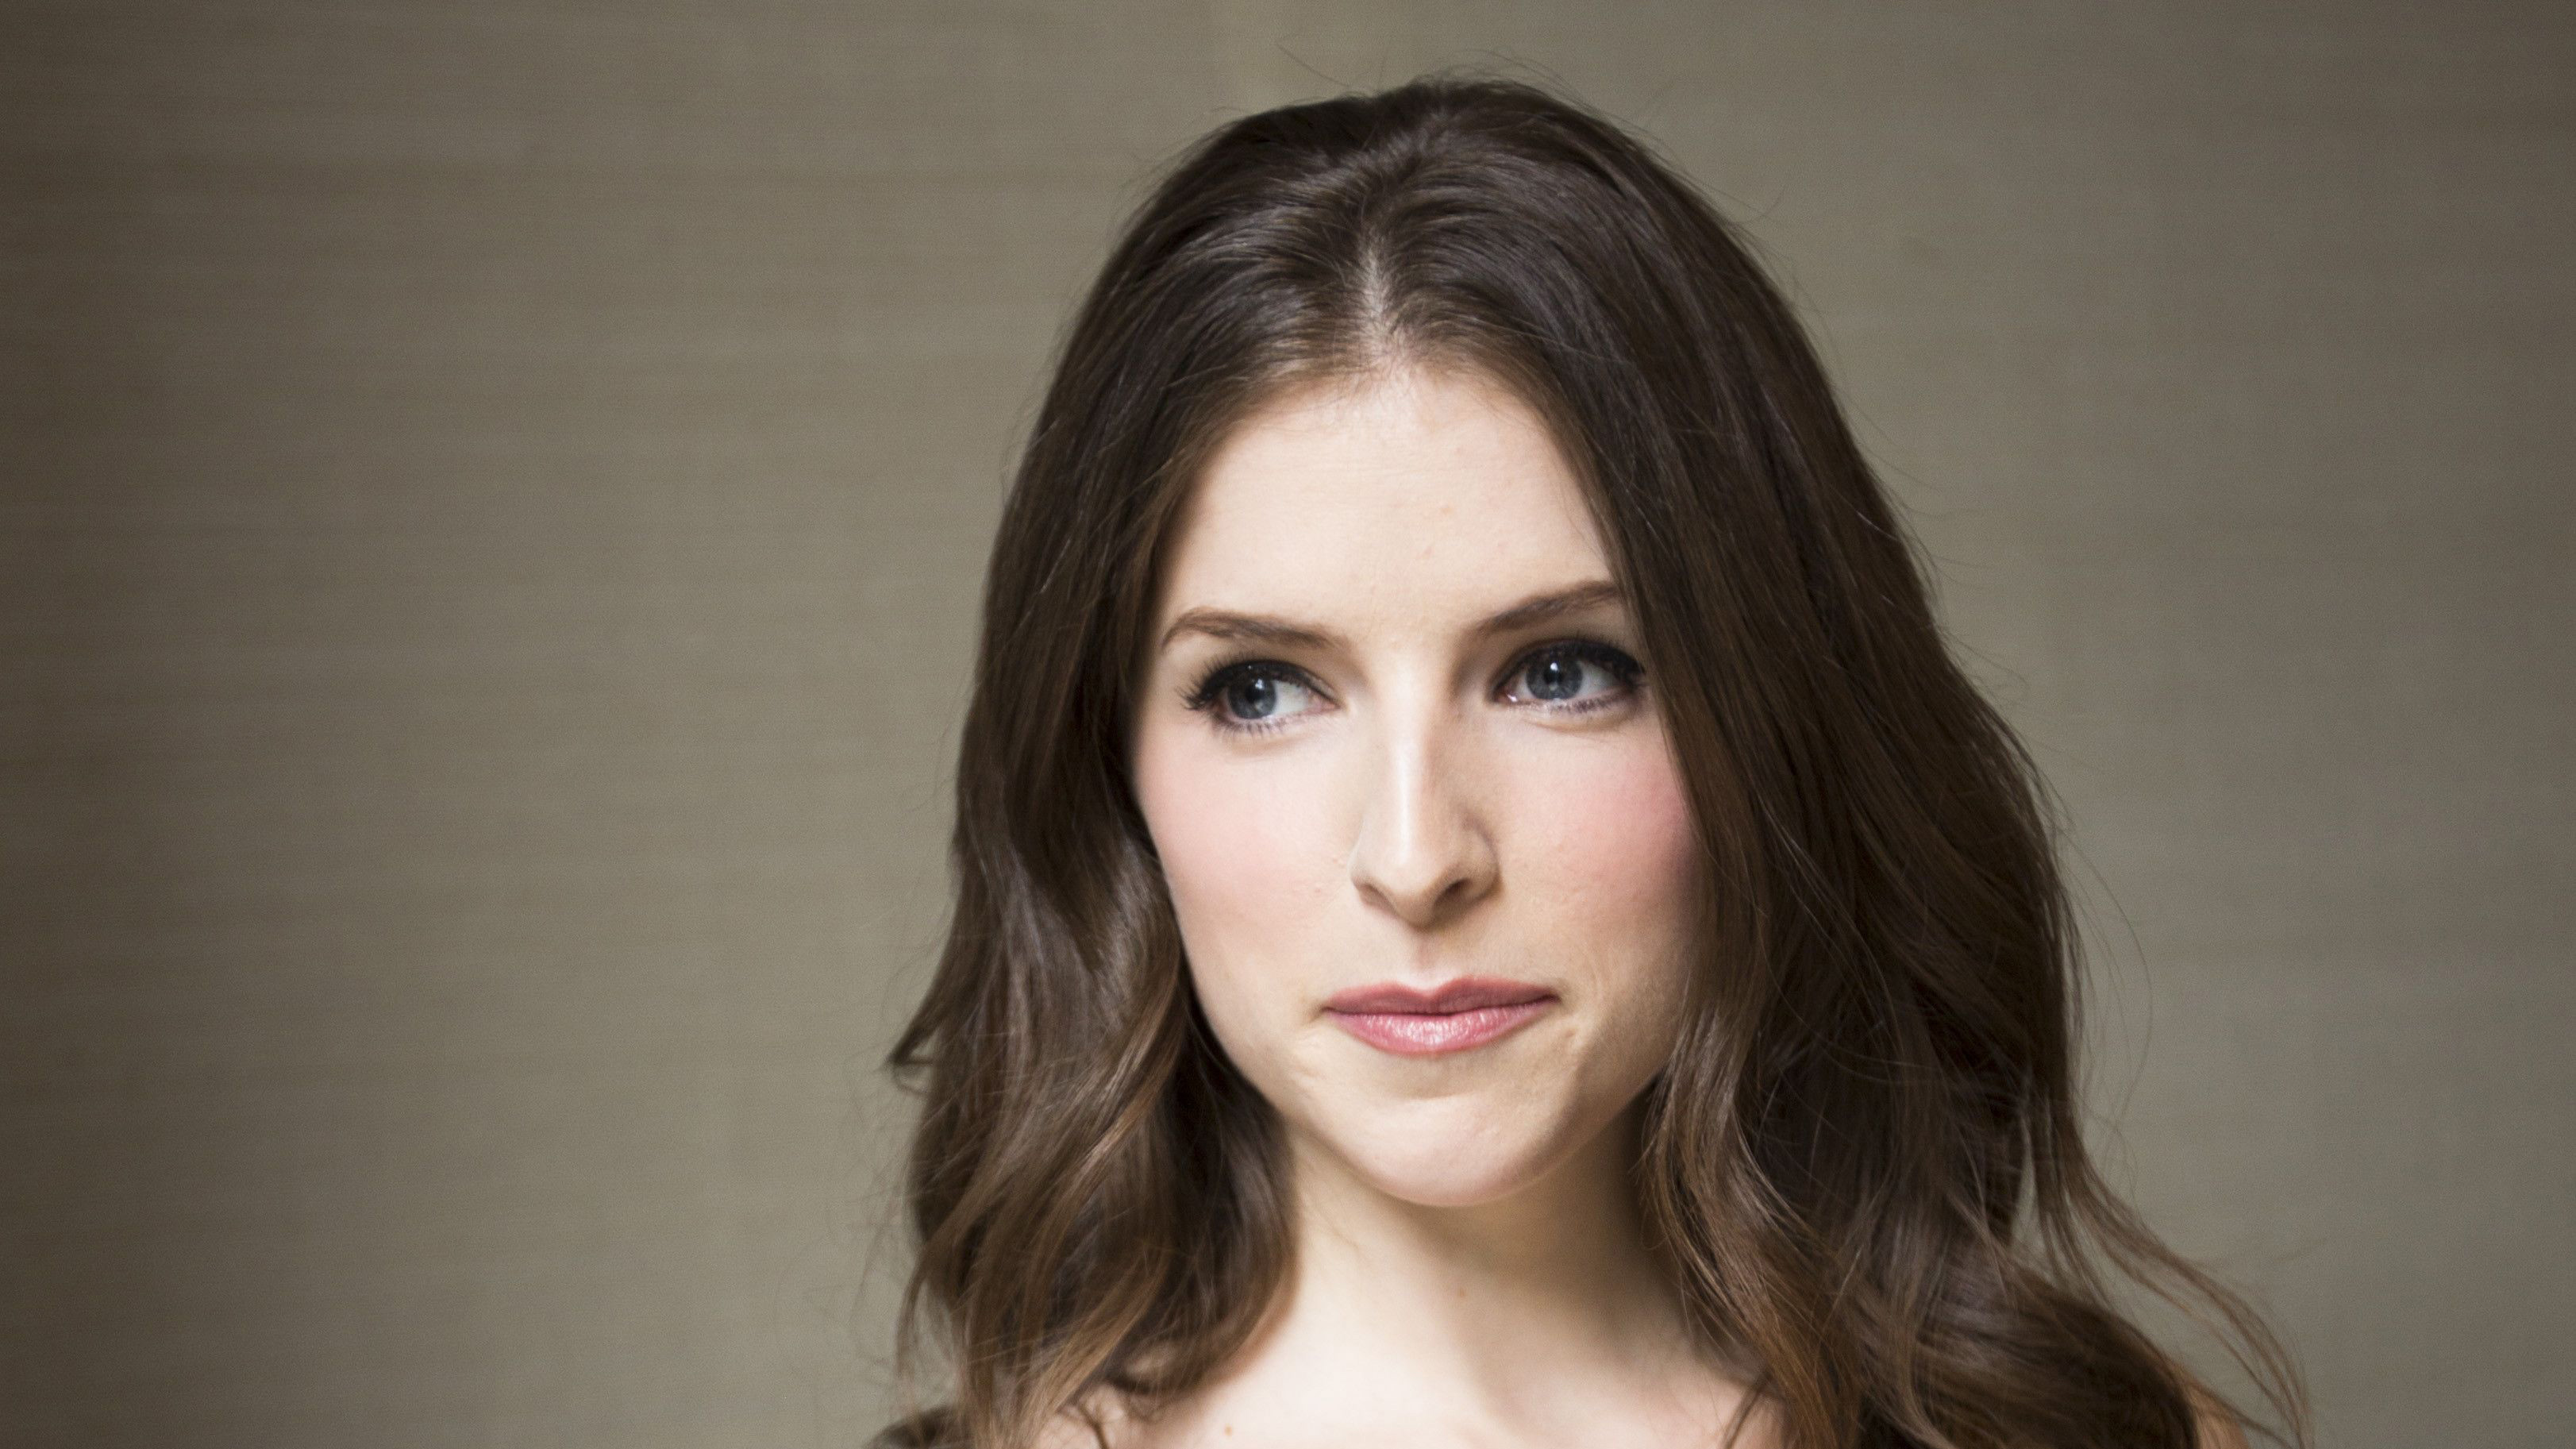 Anna Kendrick In 2018 4k Hd Celebrities 4k Wallpapers Images Backgrounds Photos And Pictures